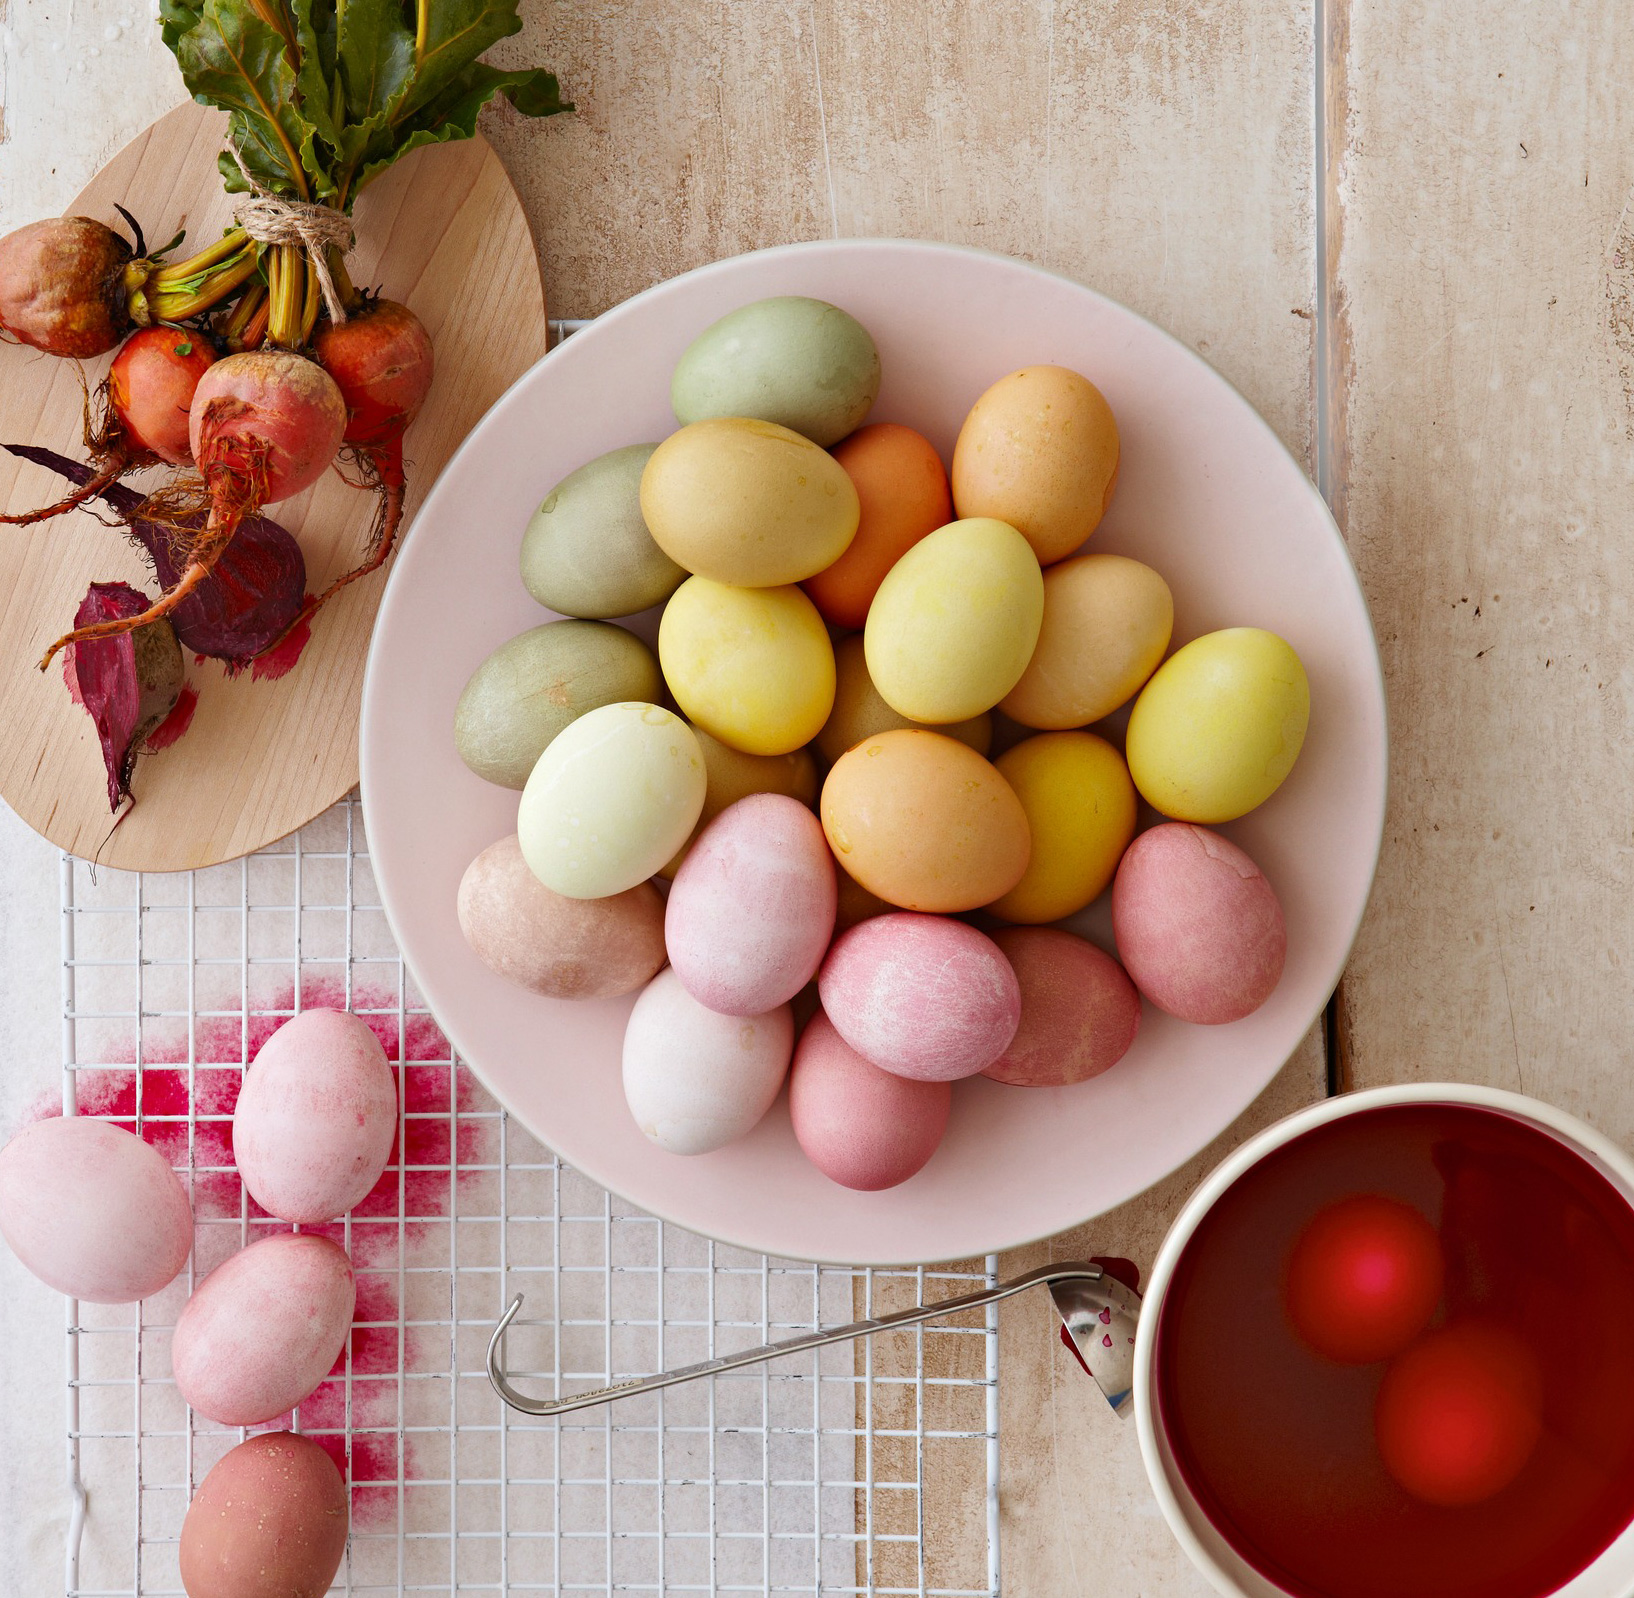 Eggs with natural dye